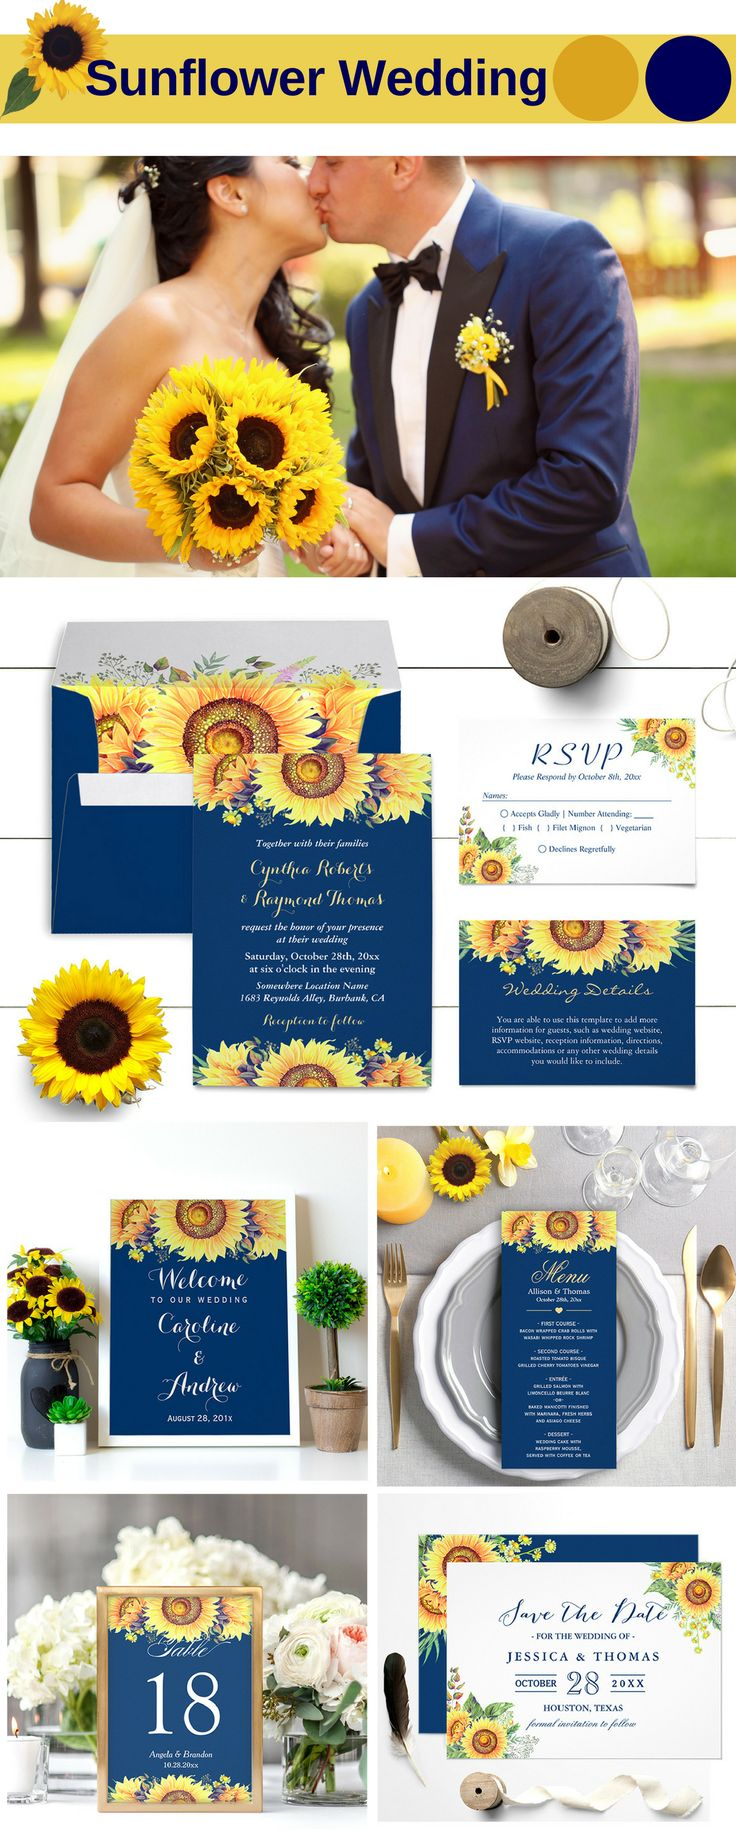 Best 700 Sunflower Wedding Invitations Images On Pinterest